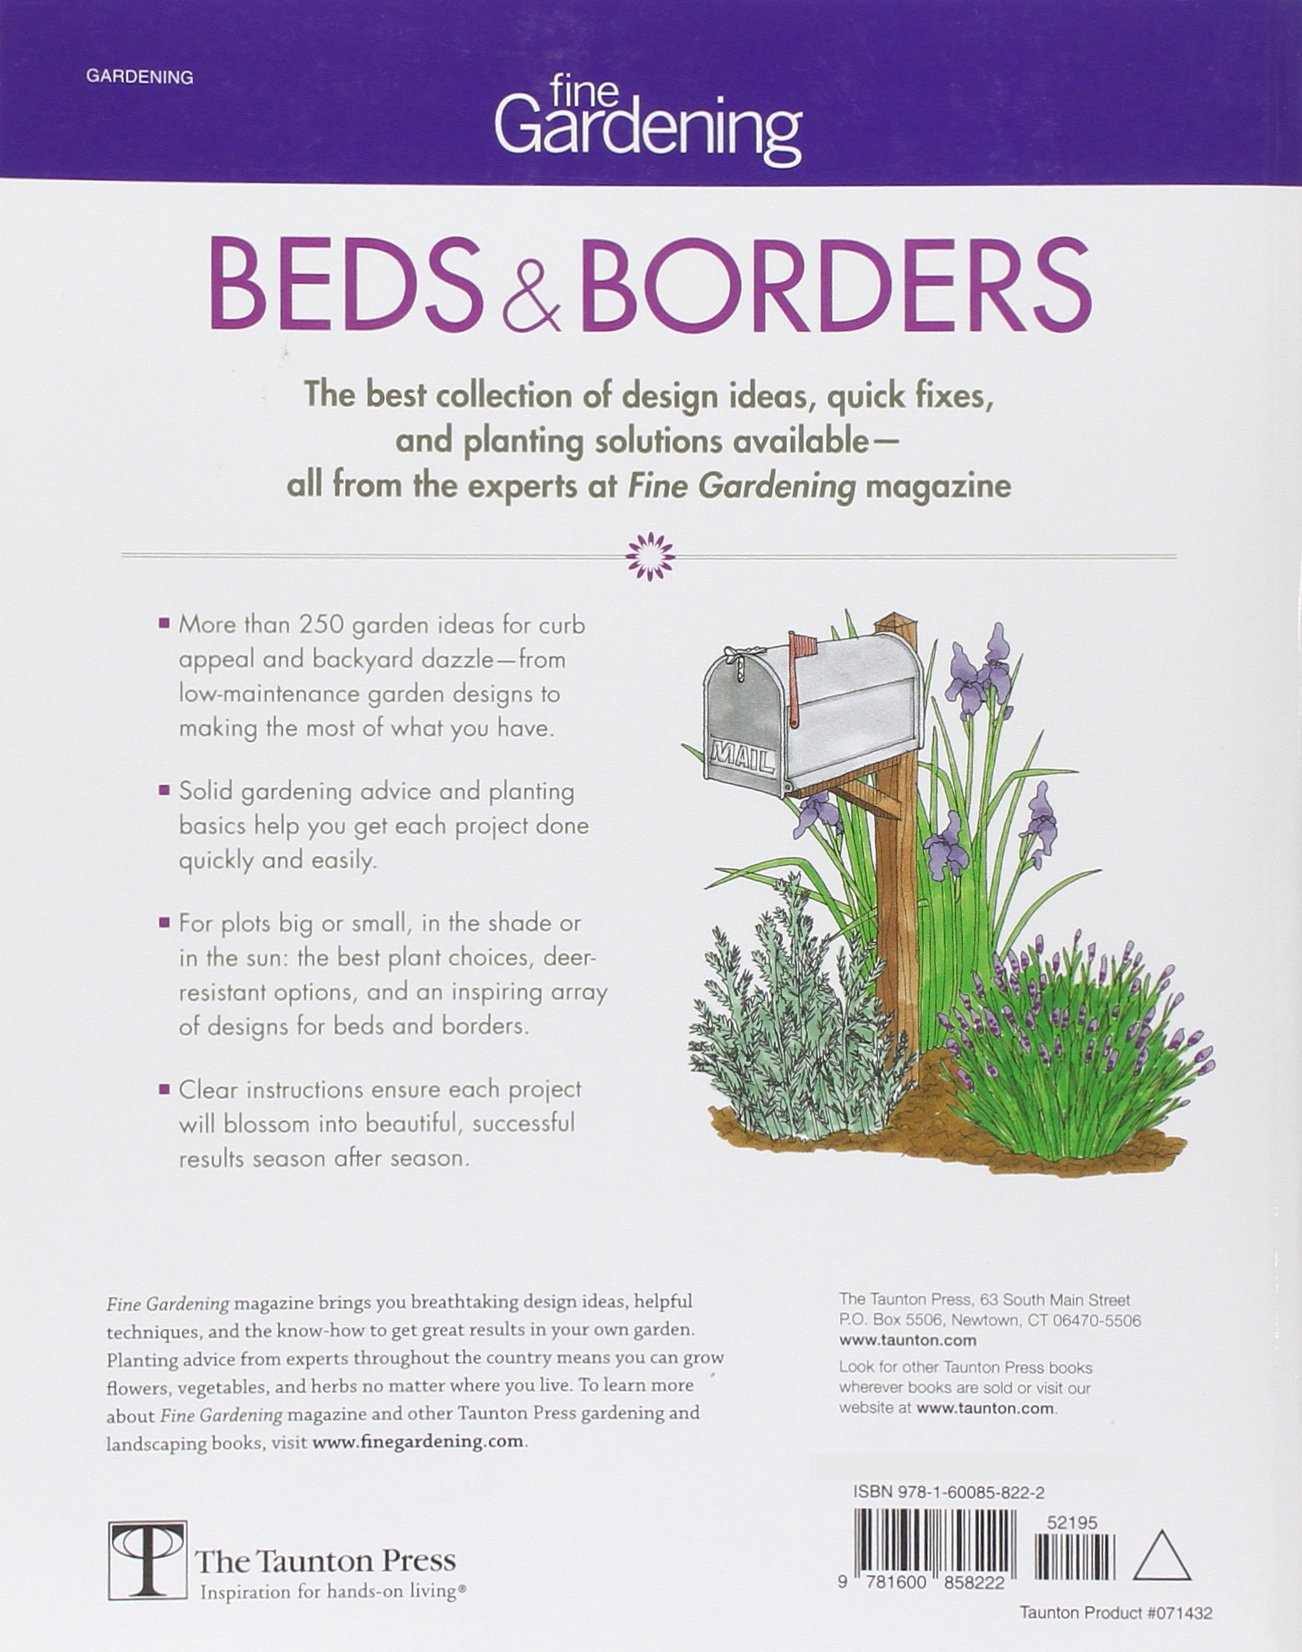 Fine Gardening Beds U0026 Borders: Design Ideas For Gardens Large And Small:  Editors Of Fine Gardening: 9781600858222: Amazon.com: Books